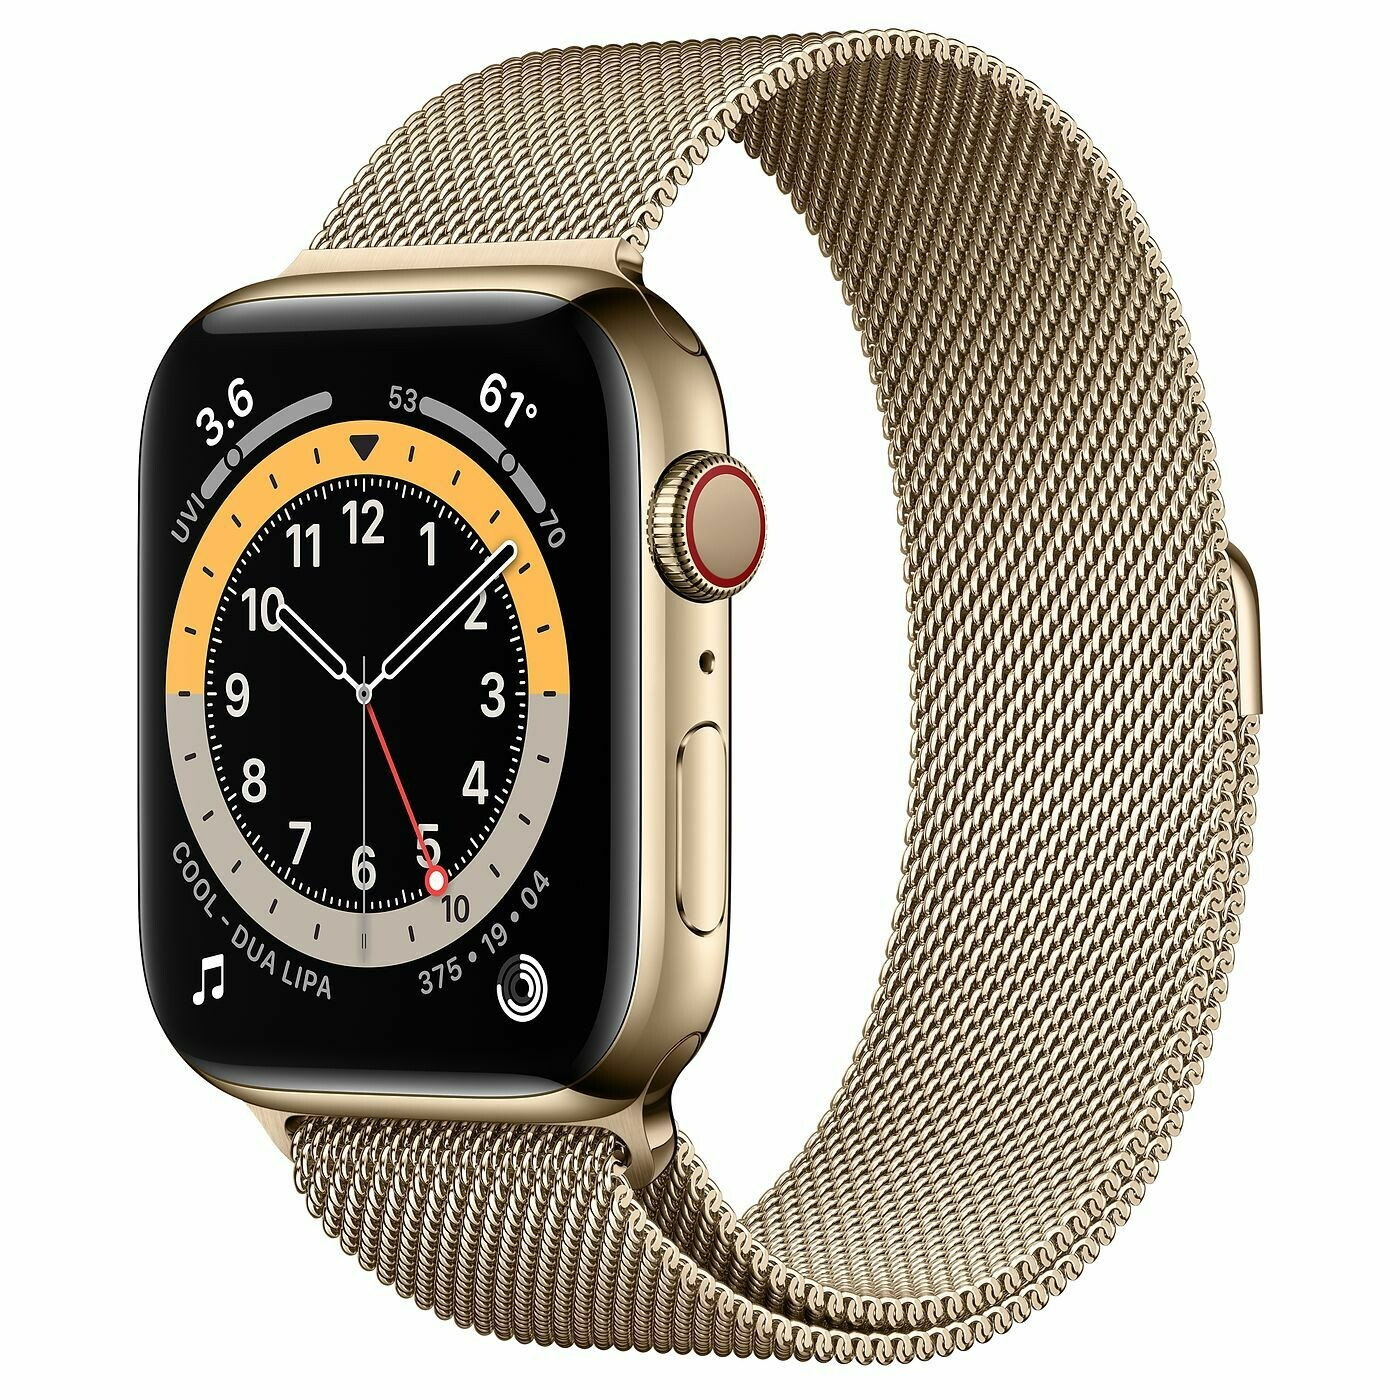 Часы Apple Watch Series 6 GPS + Cellular 44mm Stainless Steel Case with Milanese Loop (Золотистый)